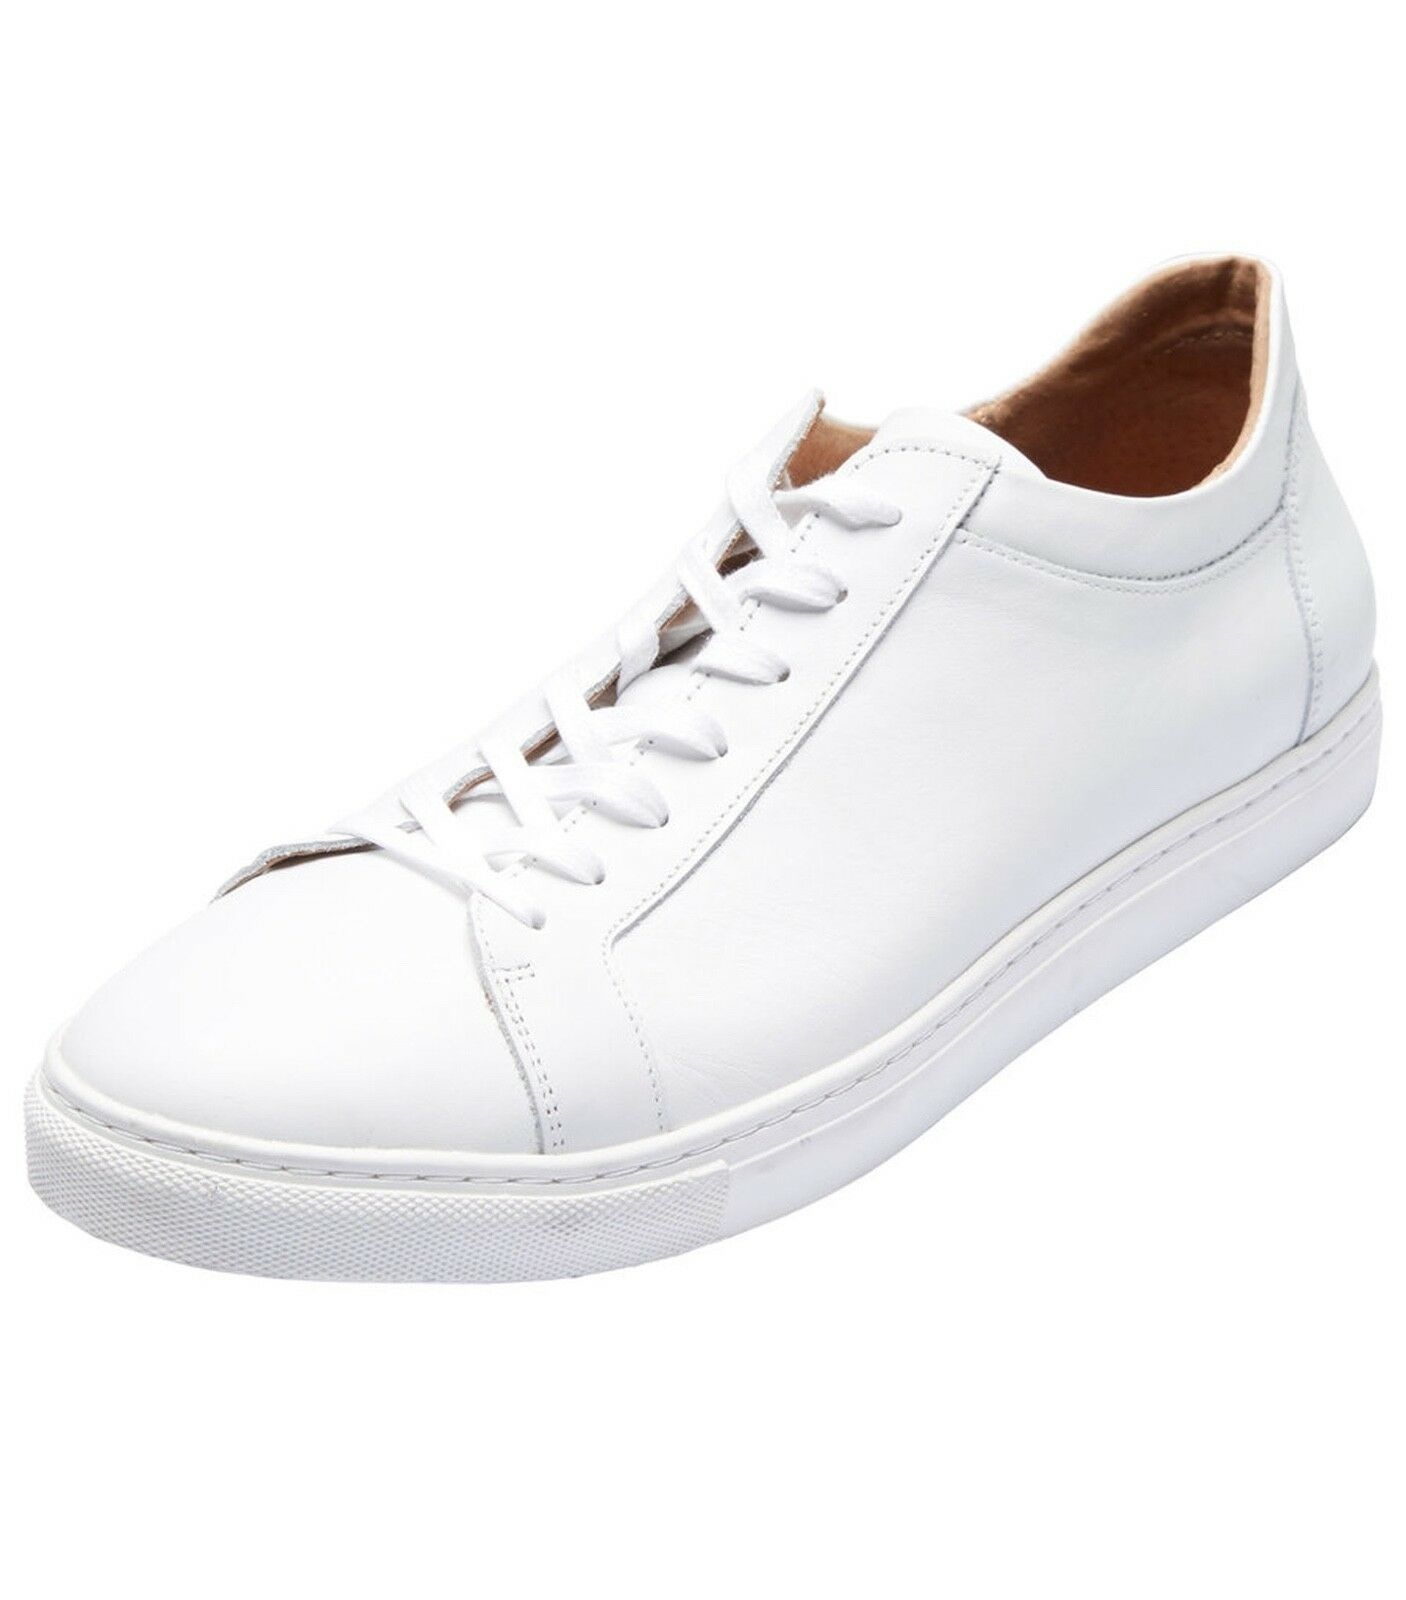 Selected Homme Mens Low Leather Casual Trainers Lace Up All White Skater Shoes